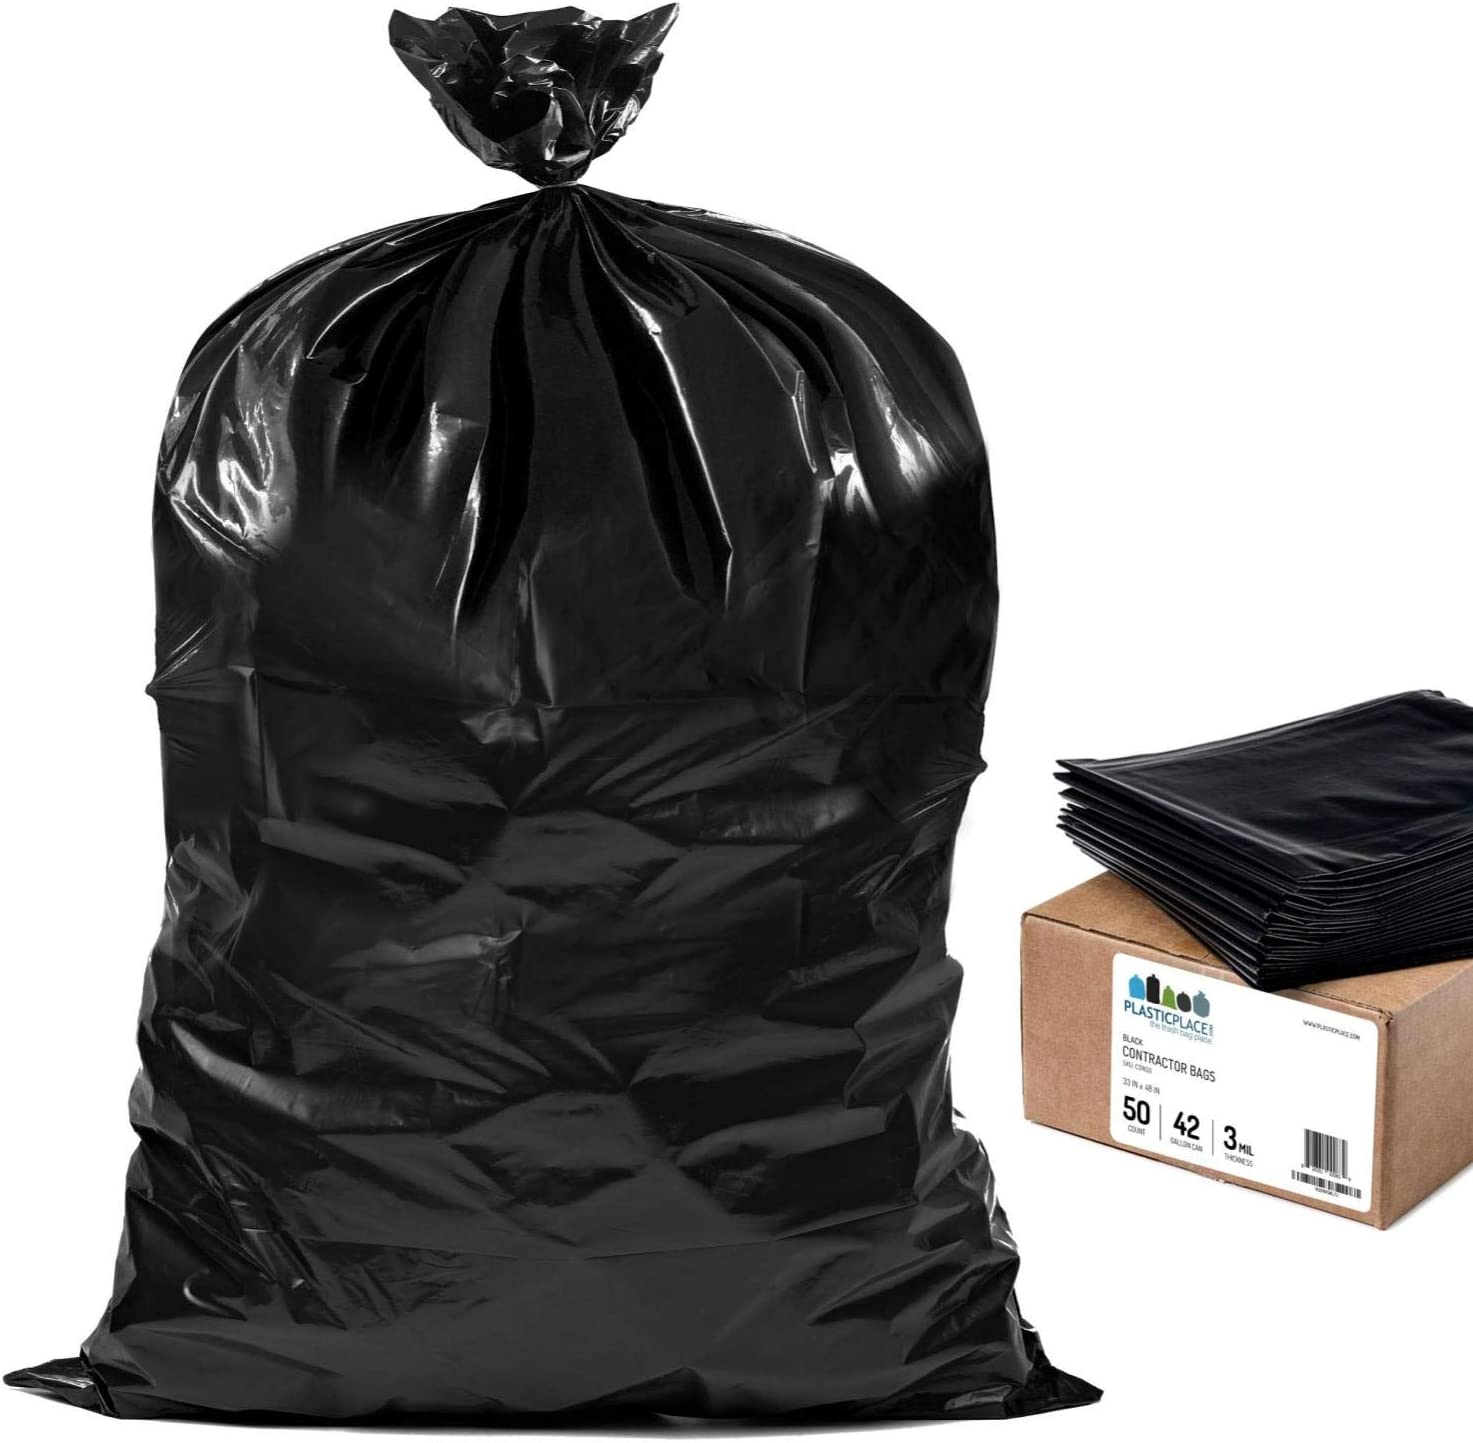 Aserson Heavy Duty Contractor Trash Garbage Bags NEW 3MIL Strengh 42 Gallon ..